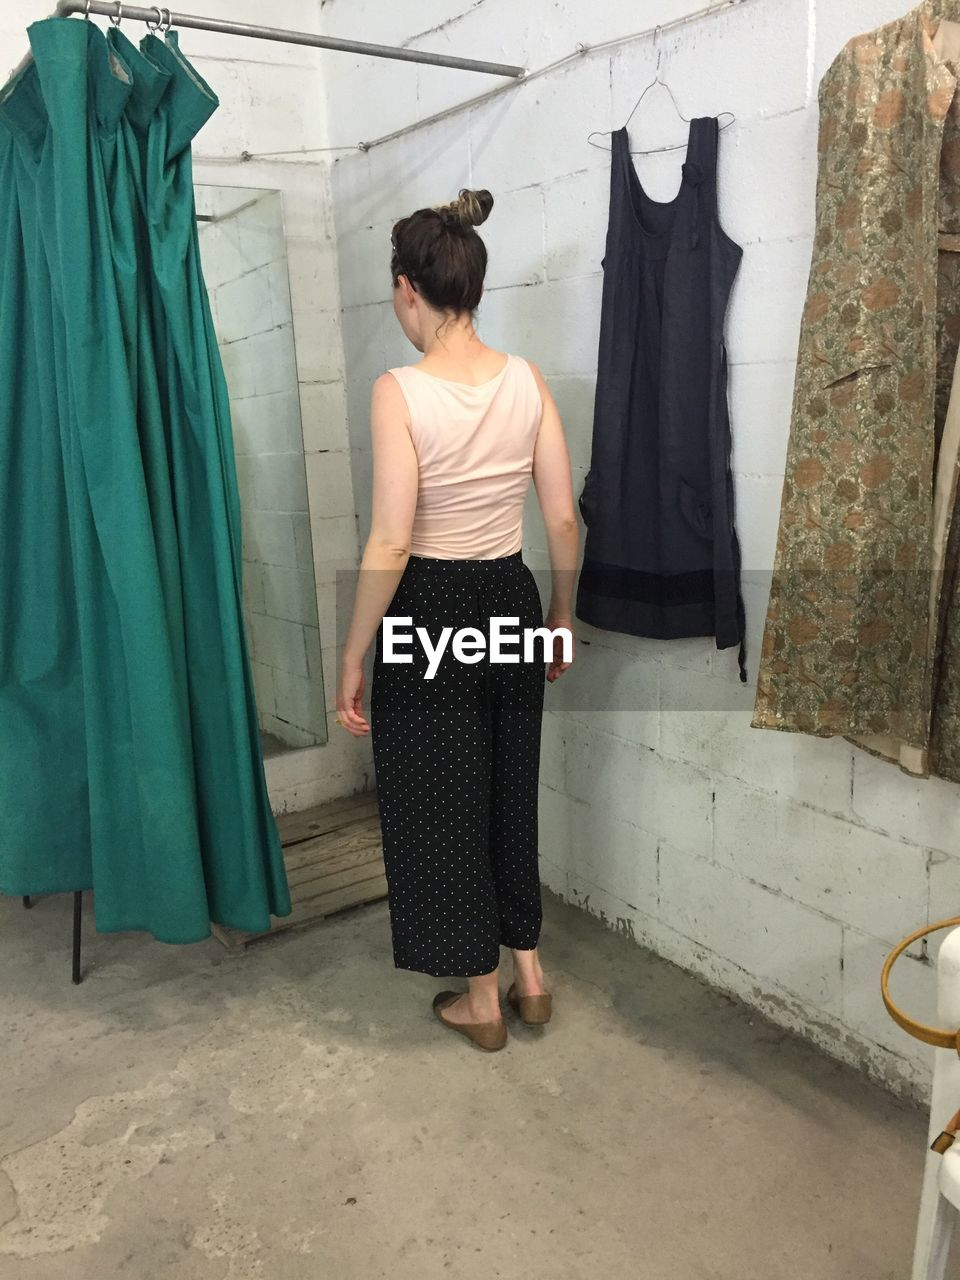 fashion, standing, one person, clothing, real people, indoors, clothing store, rear view, retail, coathanger, fitting room, store, full length, choice, lifestyles, women, day, young adult, young women, bride, adult, people